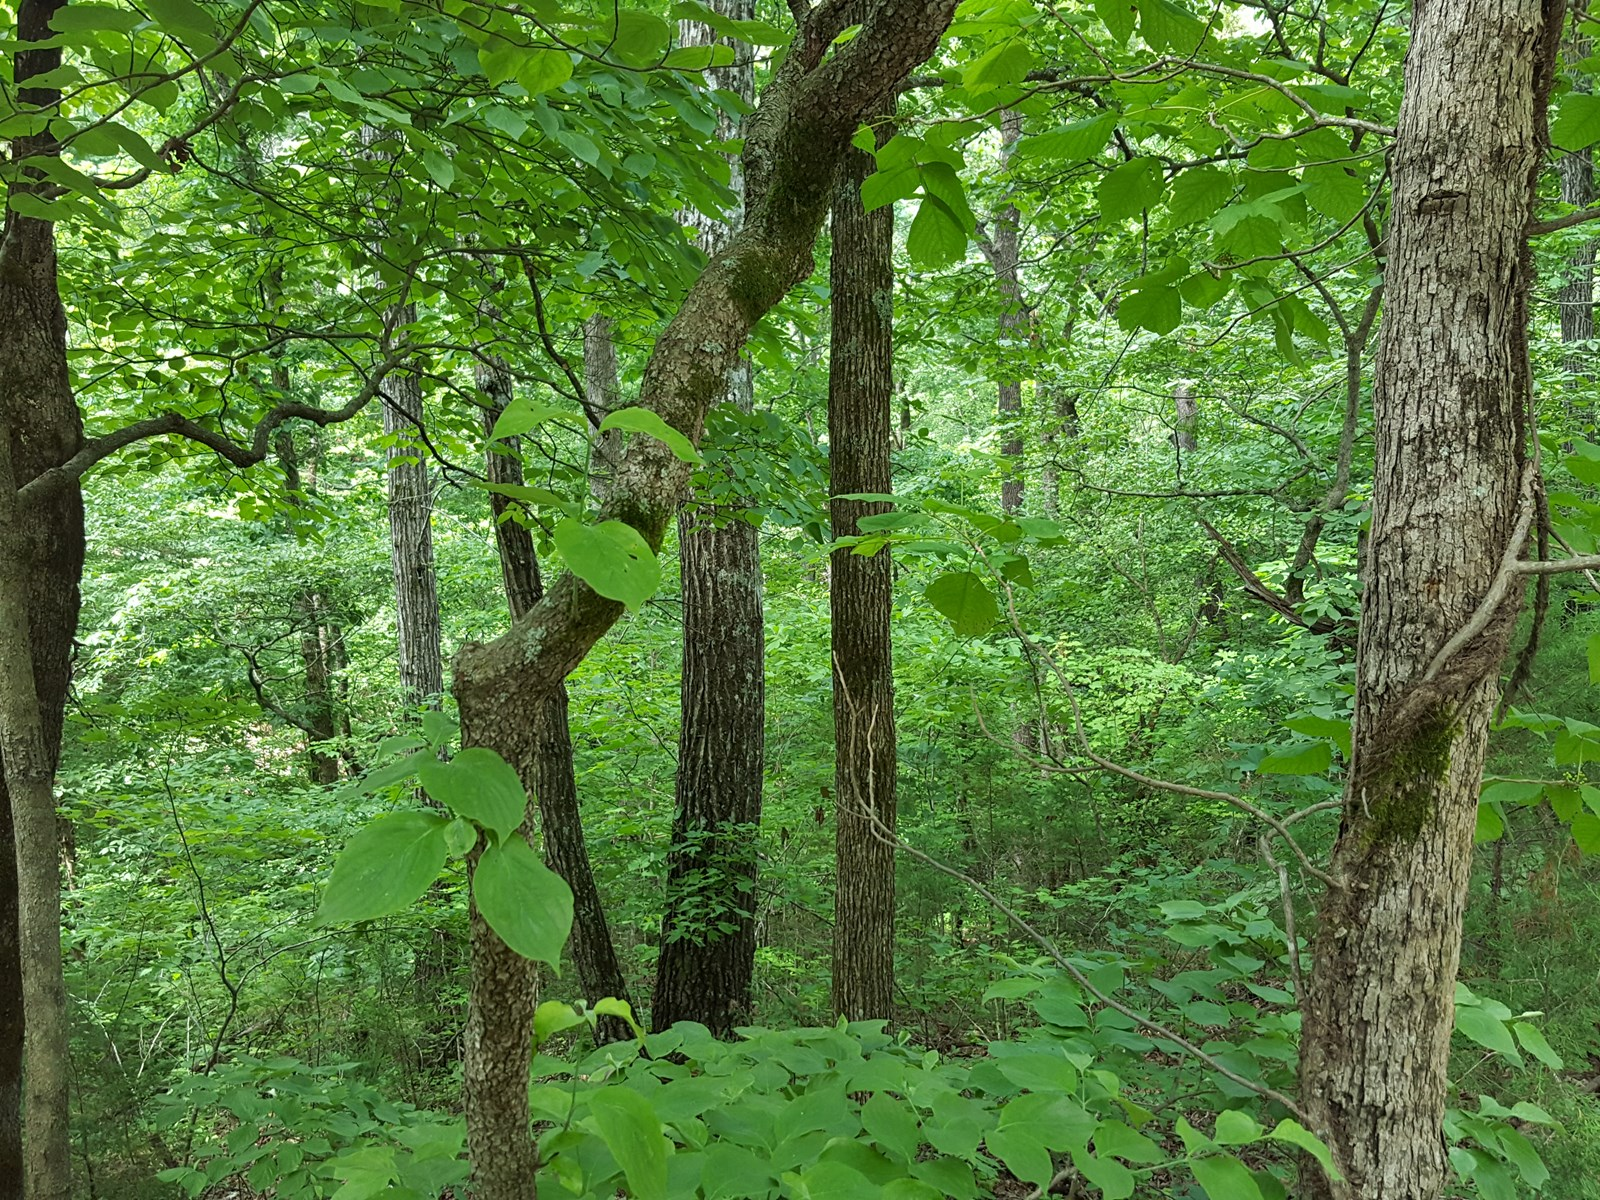 Land for Sale in Texas County, Missouri - Building Lot